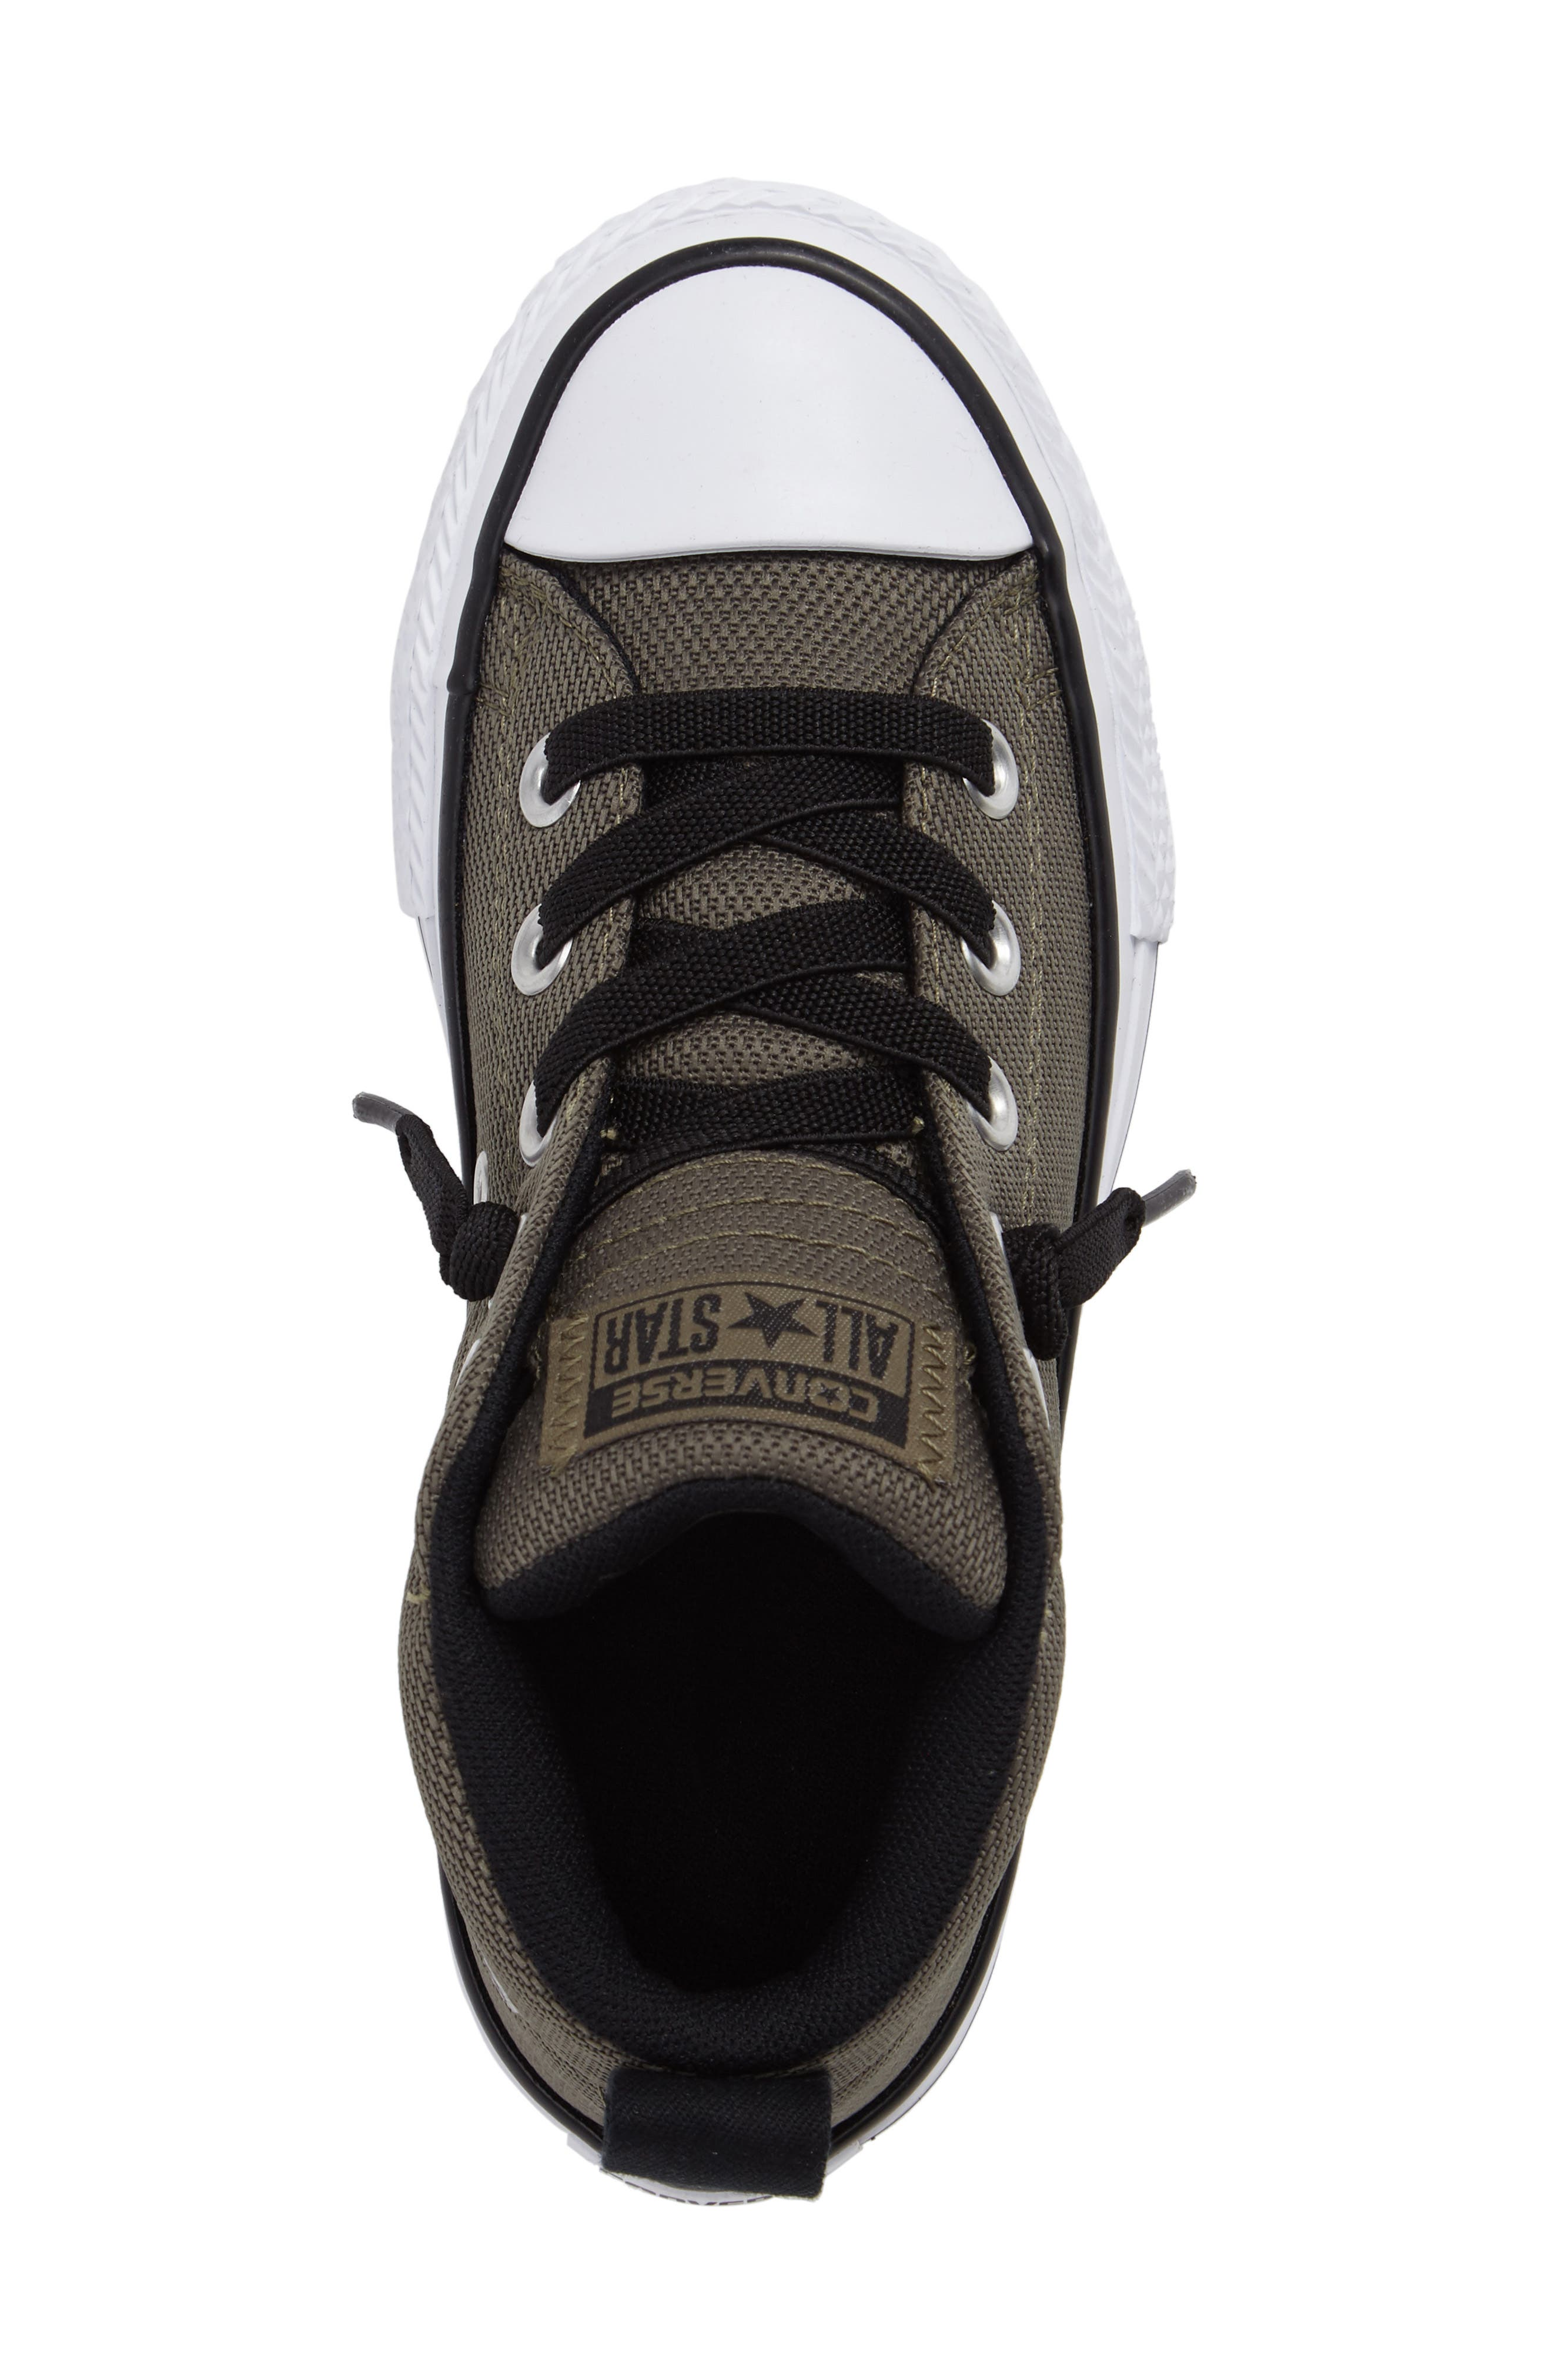 Chuck Taylor<sup>®</sup> All Star<sup>®</sup> Basket Weave Street Mid Sneaker,                             Alternate thumbnail 5, color,                             342